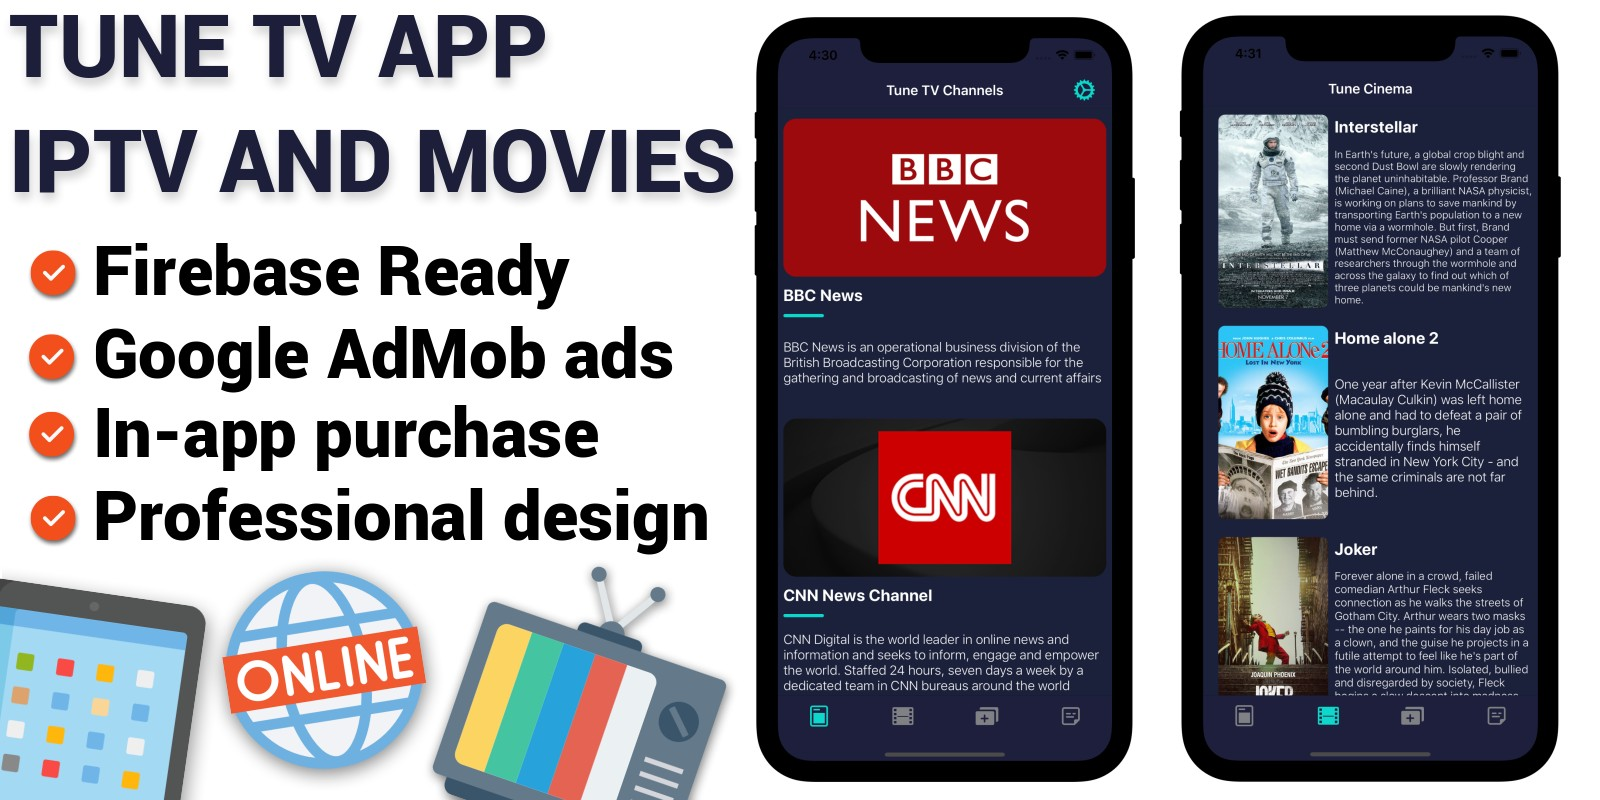 Tune TV - IPTV And Movies iOS Application